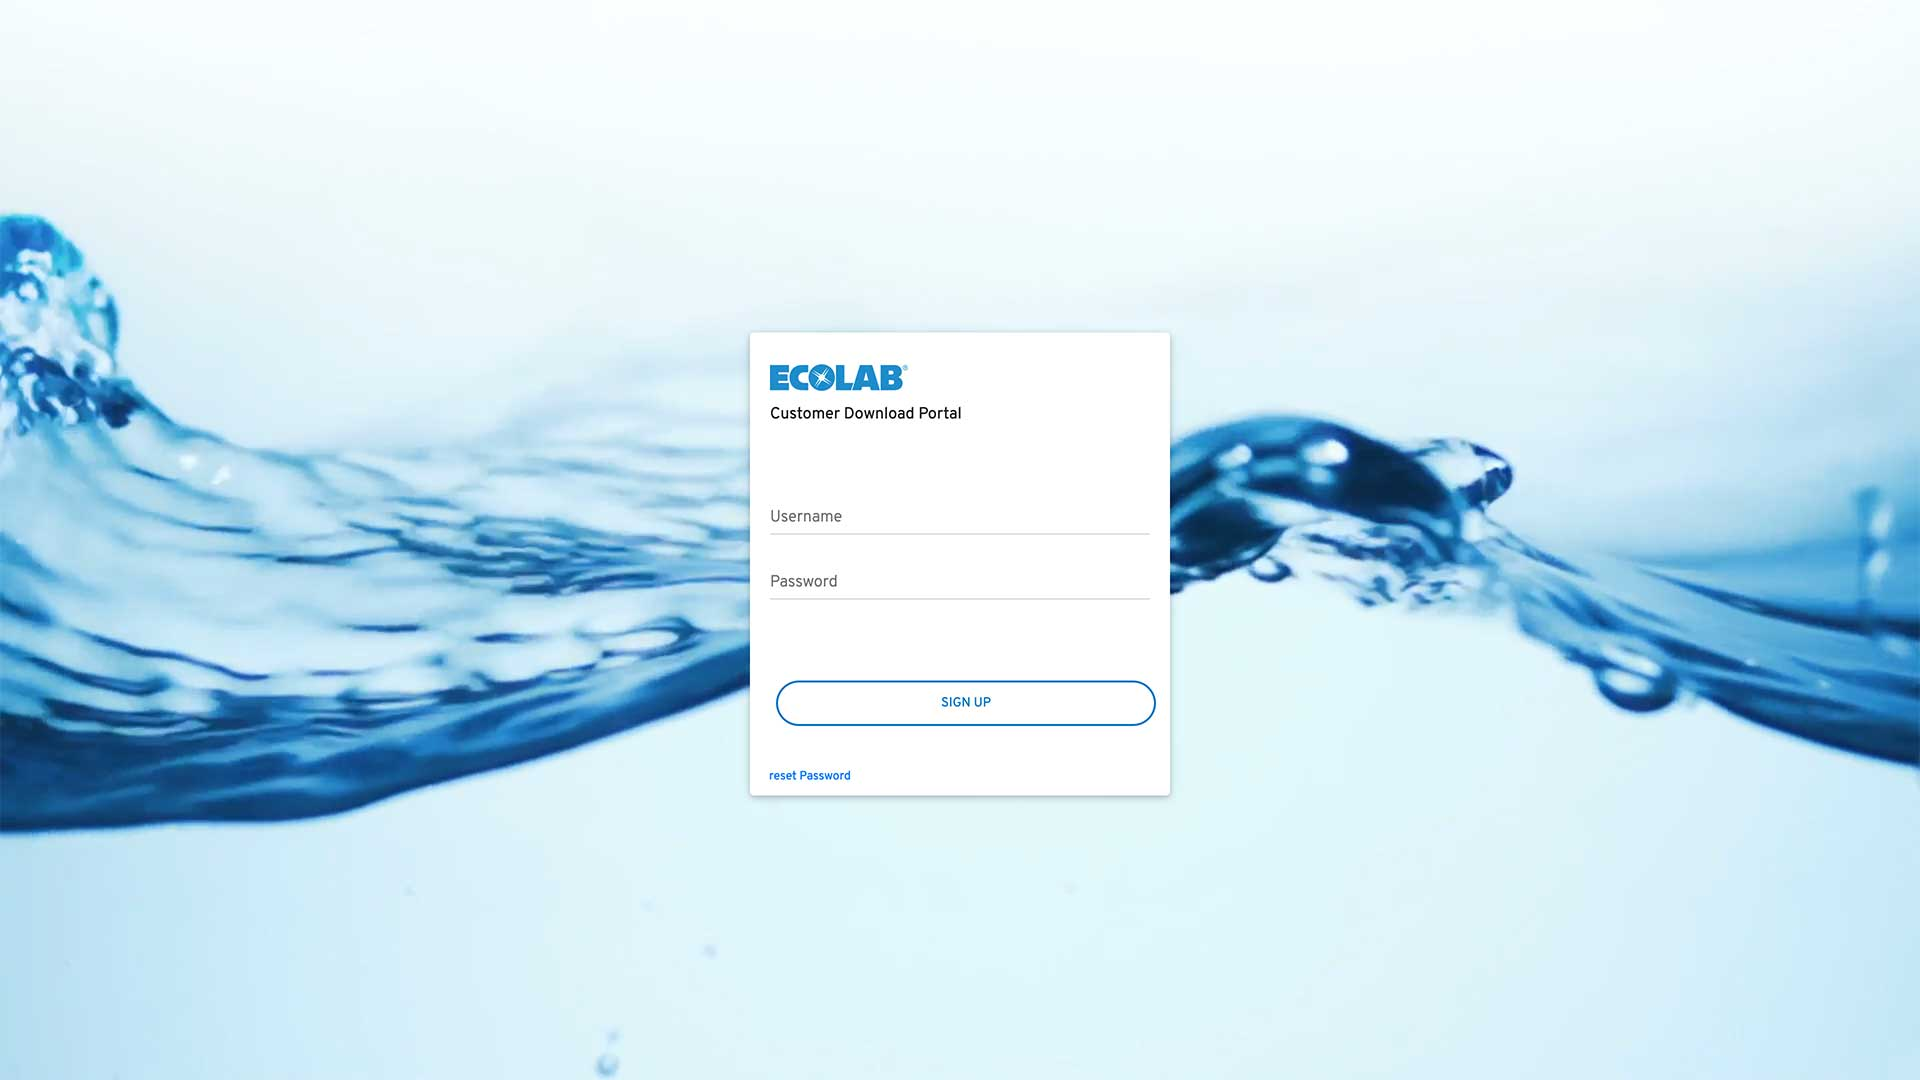 Ecolab Customer Download Portal